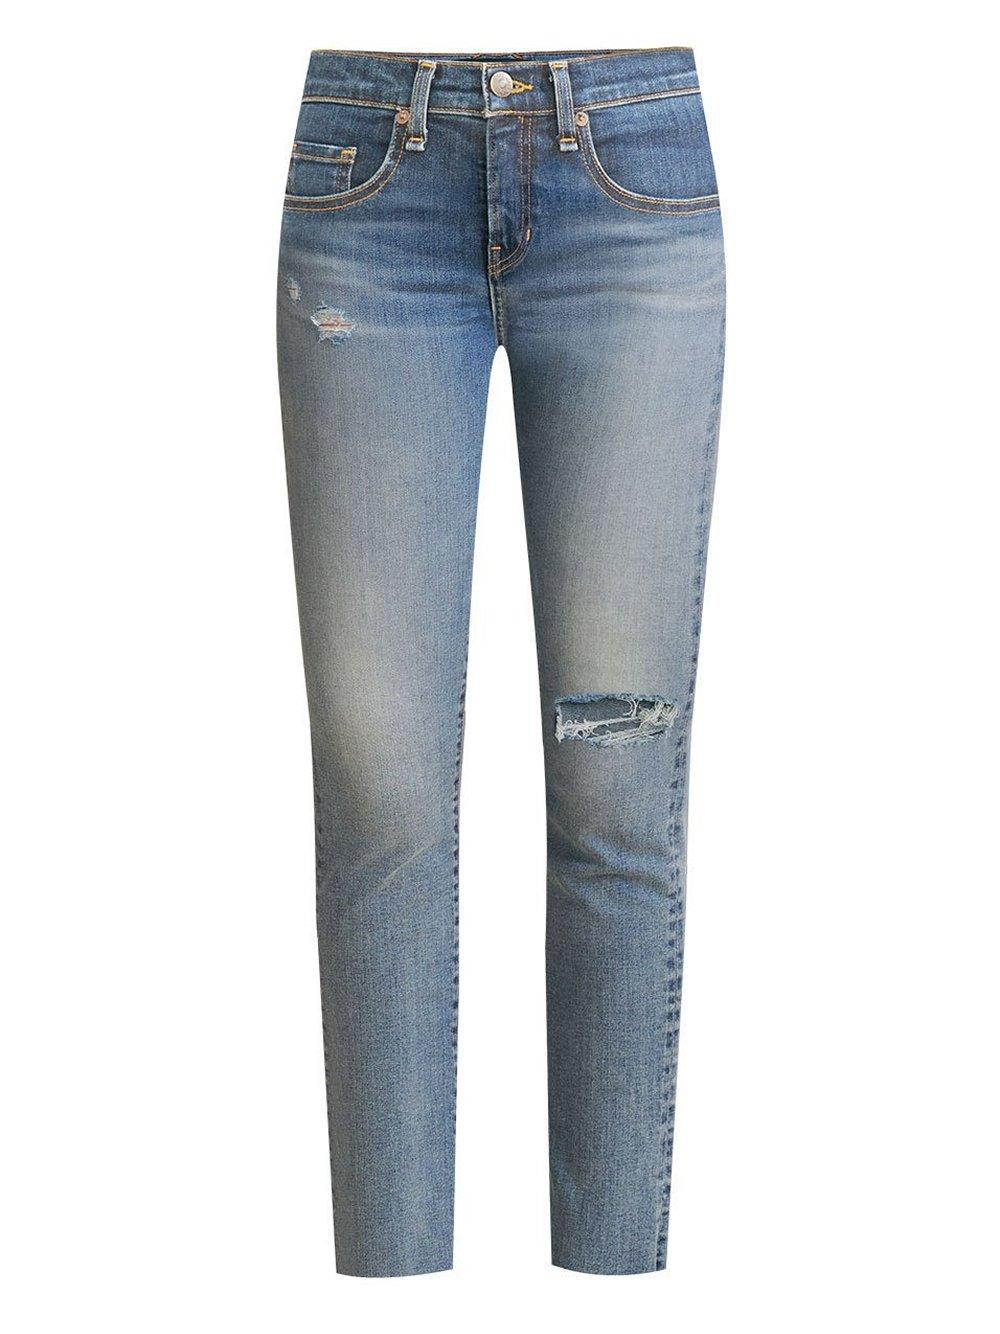 Ryleigh Distressed Straight Jean Item # J20080720642DS